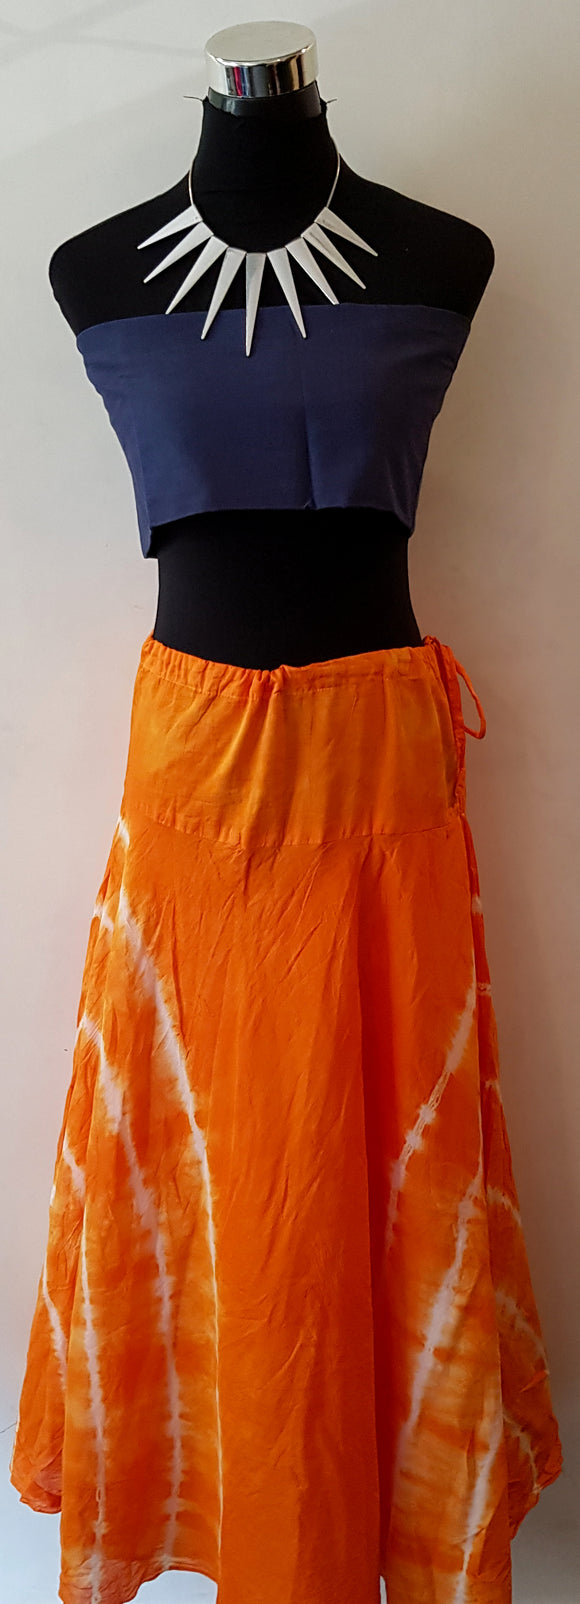 Shibori Orange Skirt (SST)